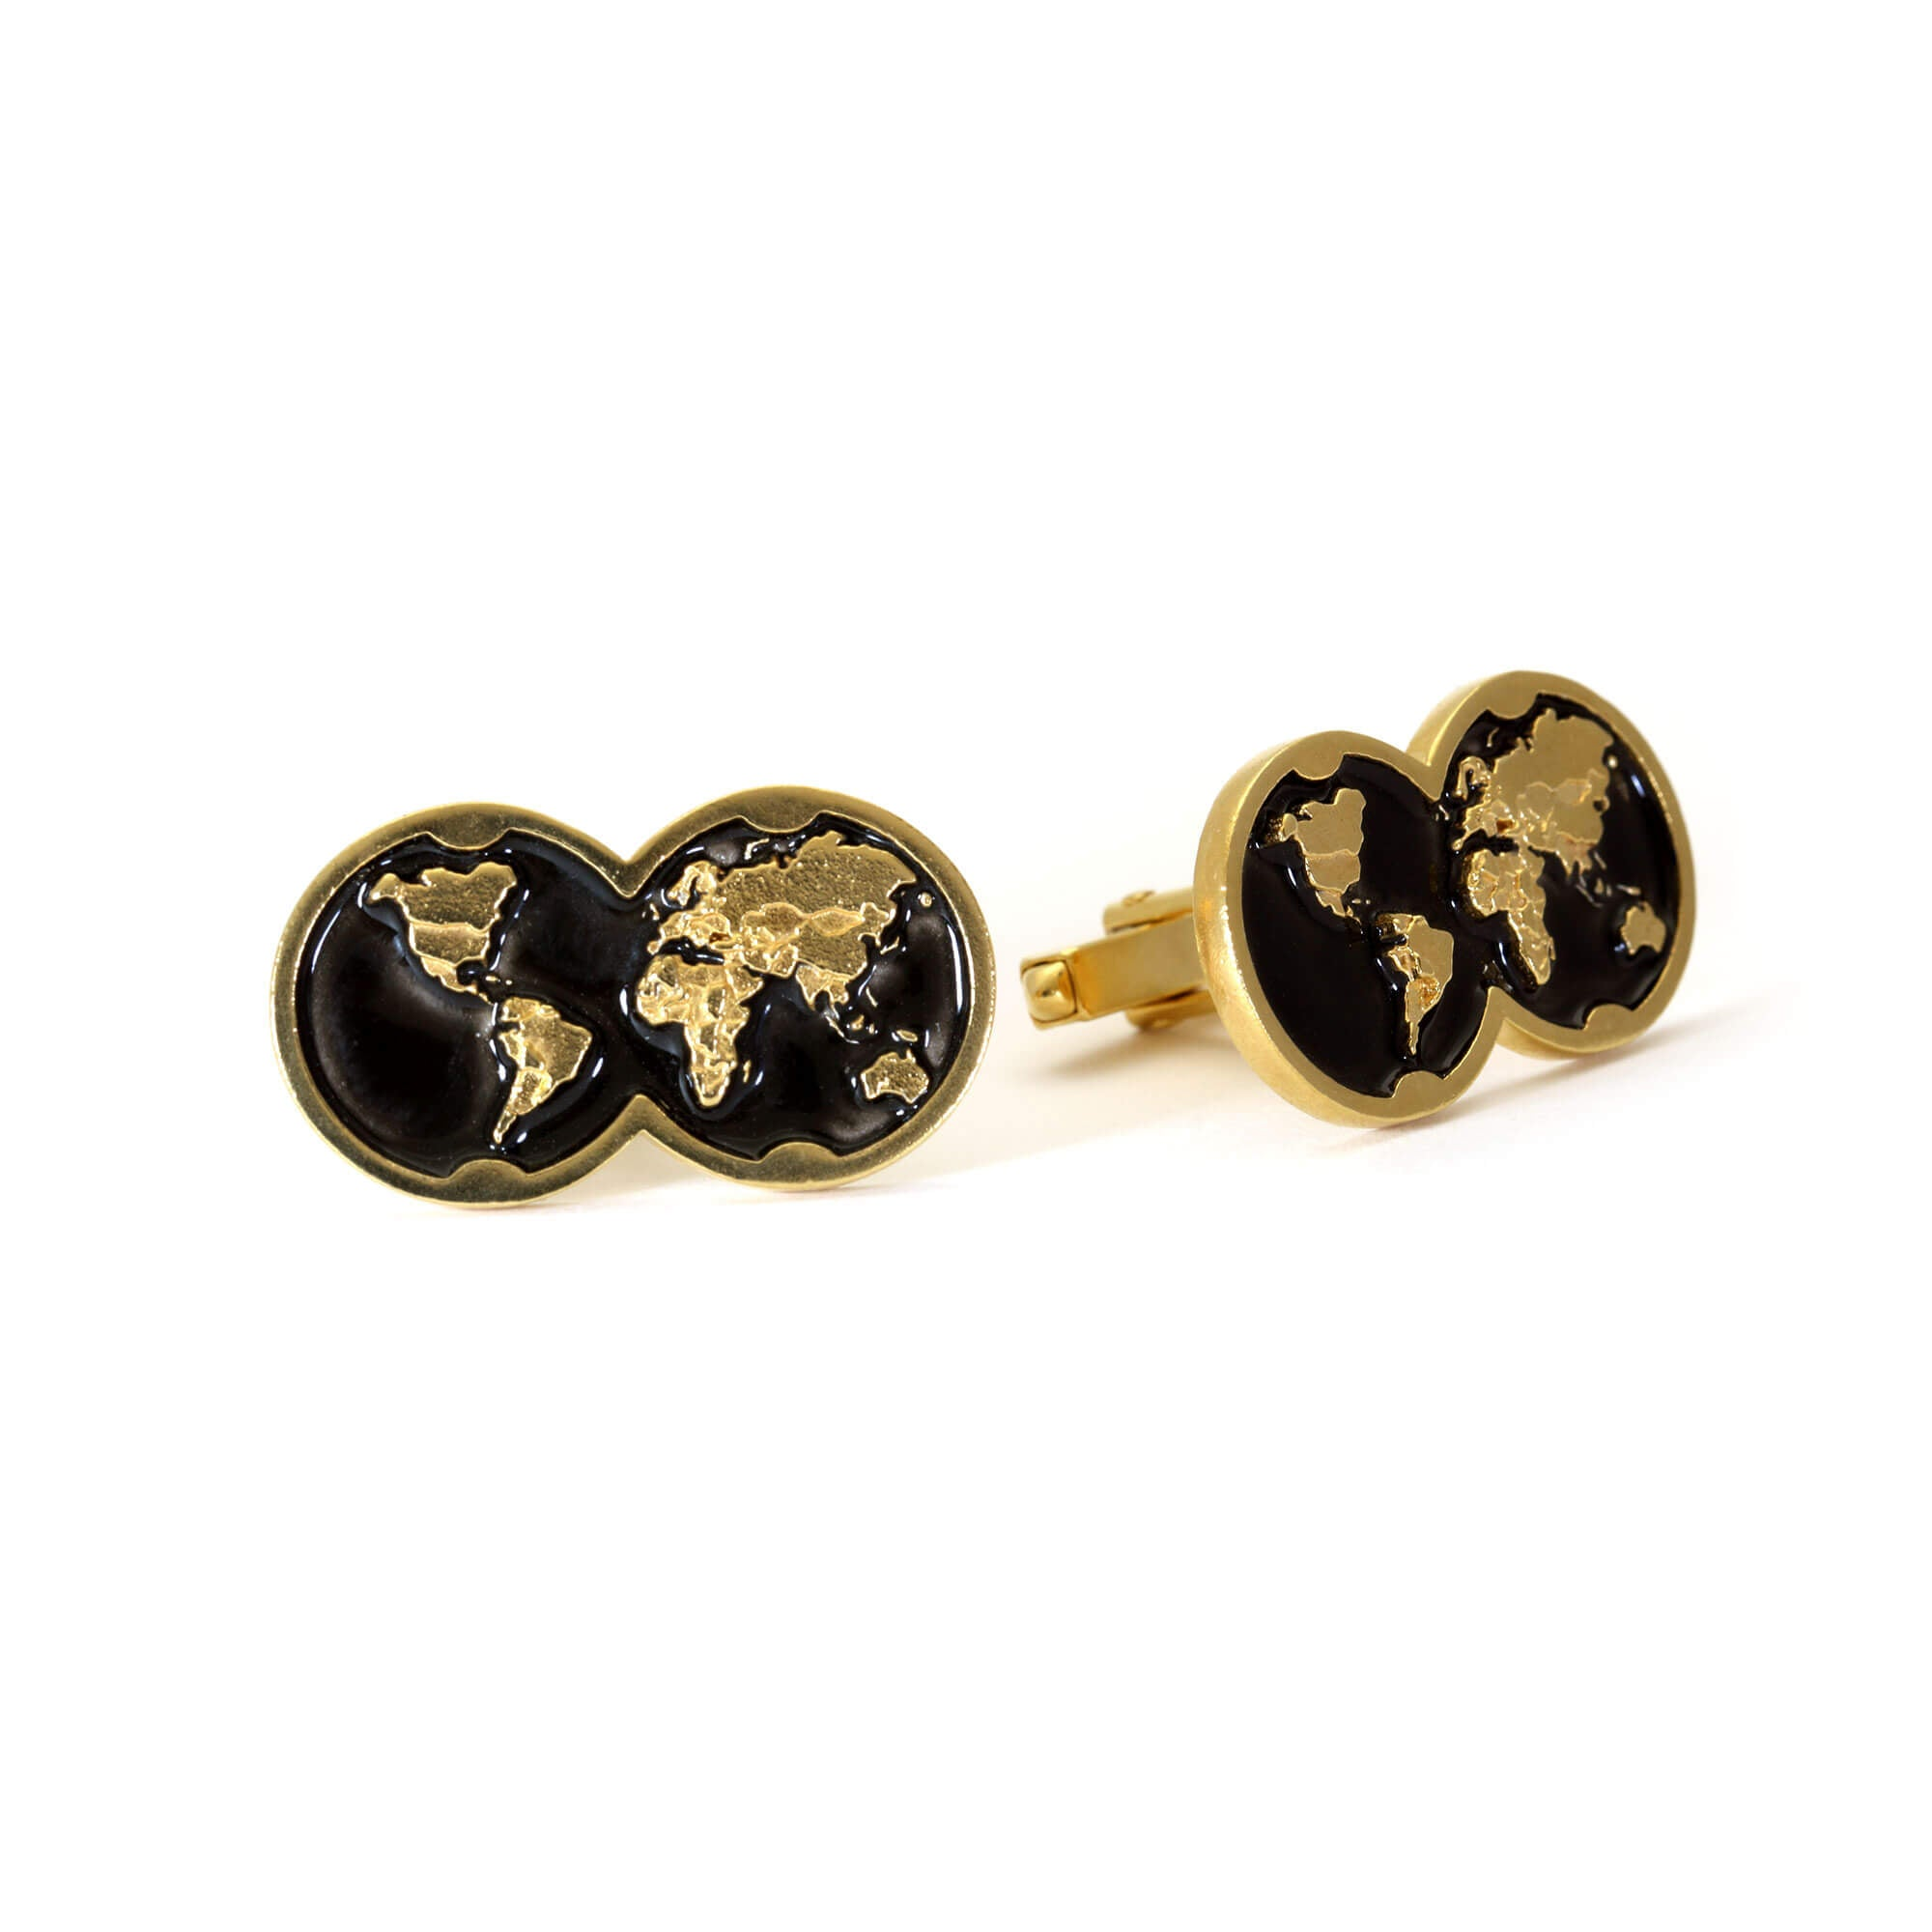 Pair of black enamel and yellow gold cufflink with double globe motif